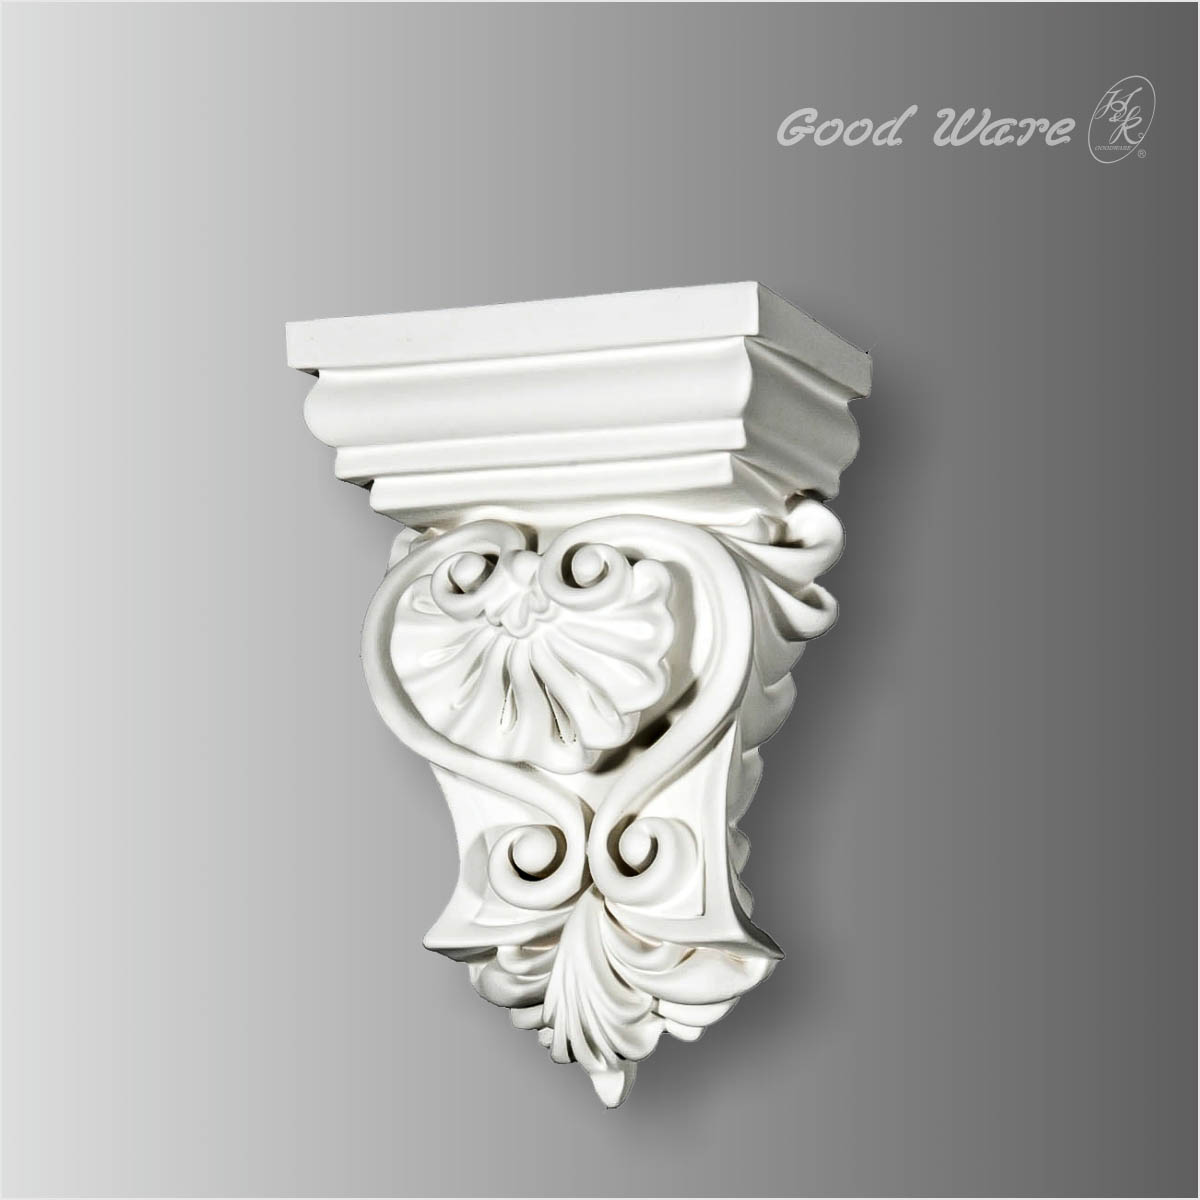 Polyurethane decorative scroll corbel